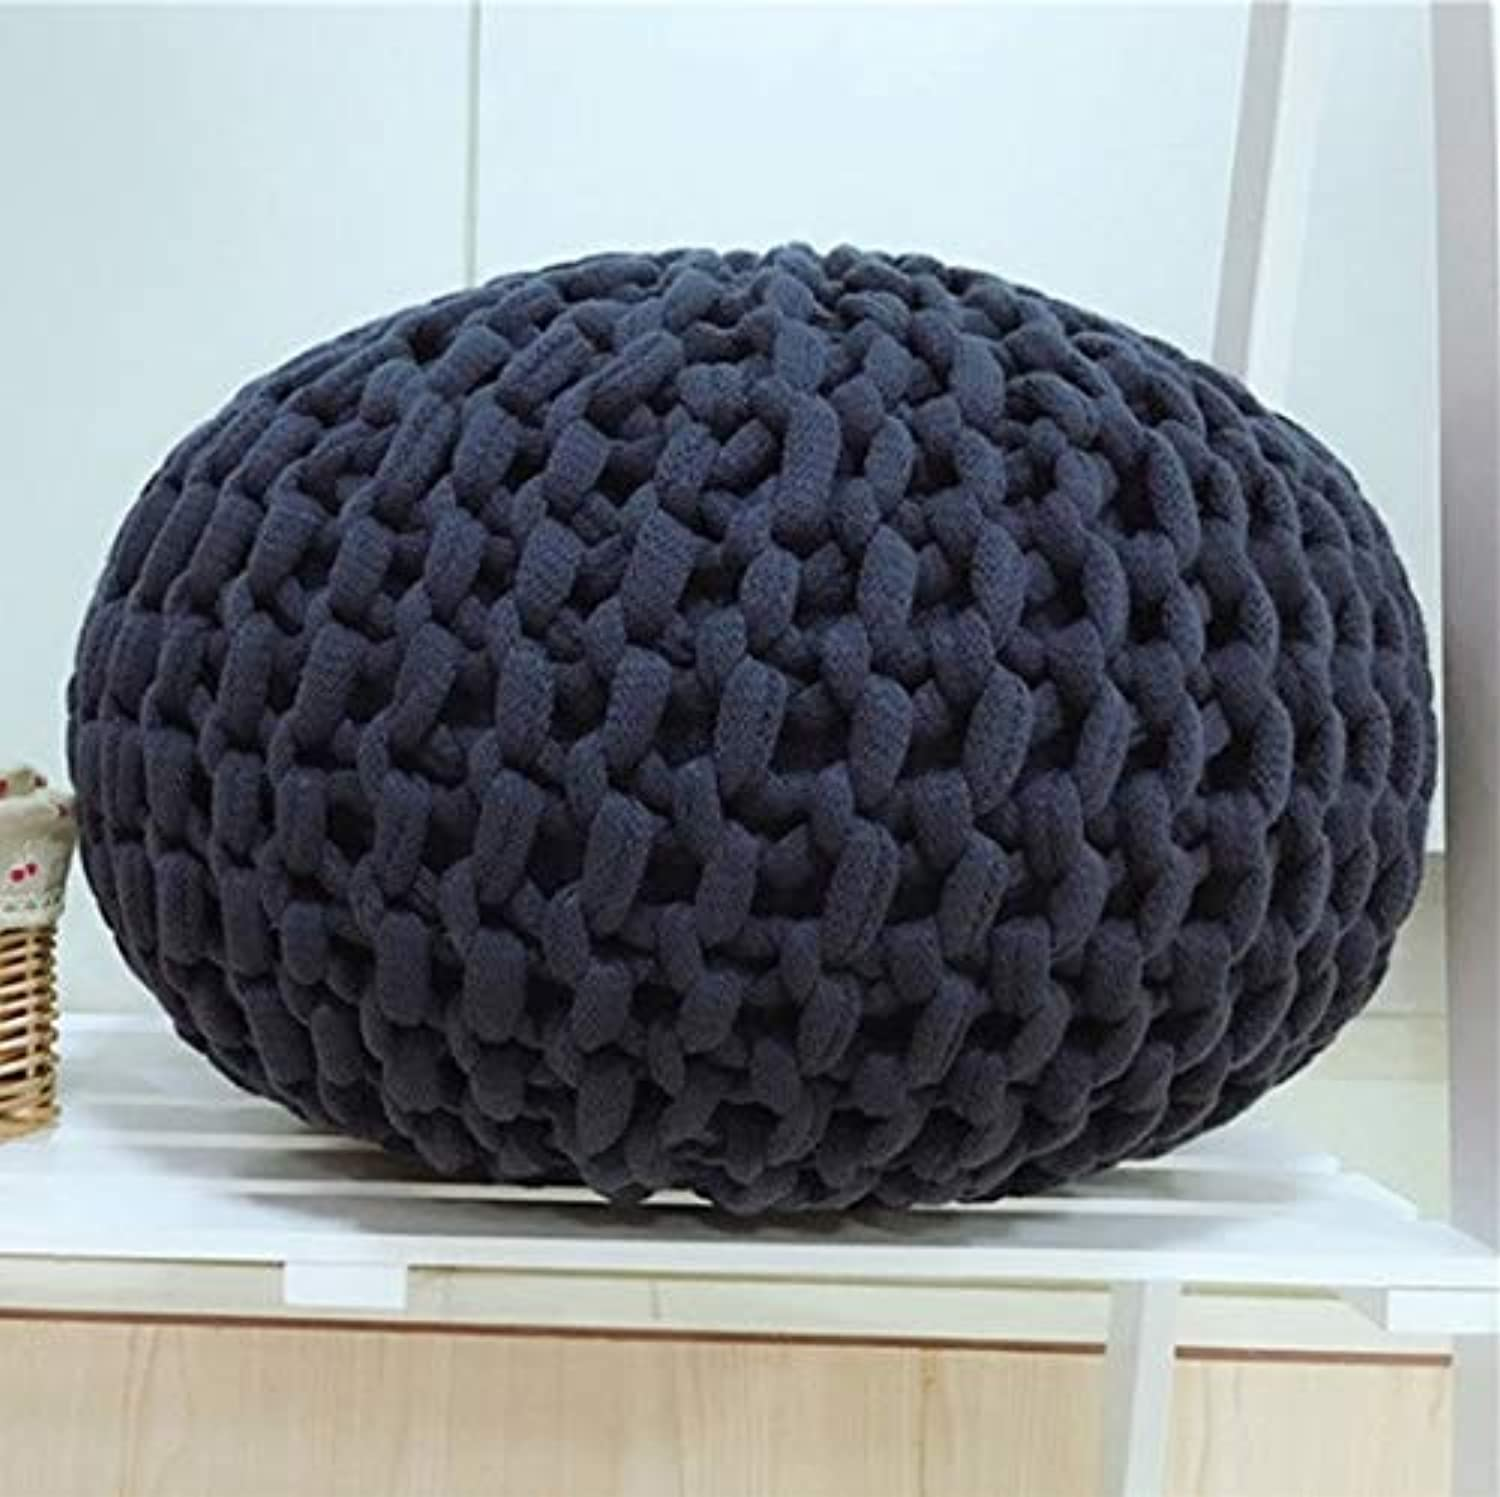 Handmade Modern Creativity Lazy Sofa Bean Bag Sofa Chair Cushion Cover Sofa Bed Tatami for Decoration Kids 20 color 3